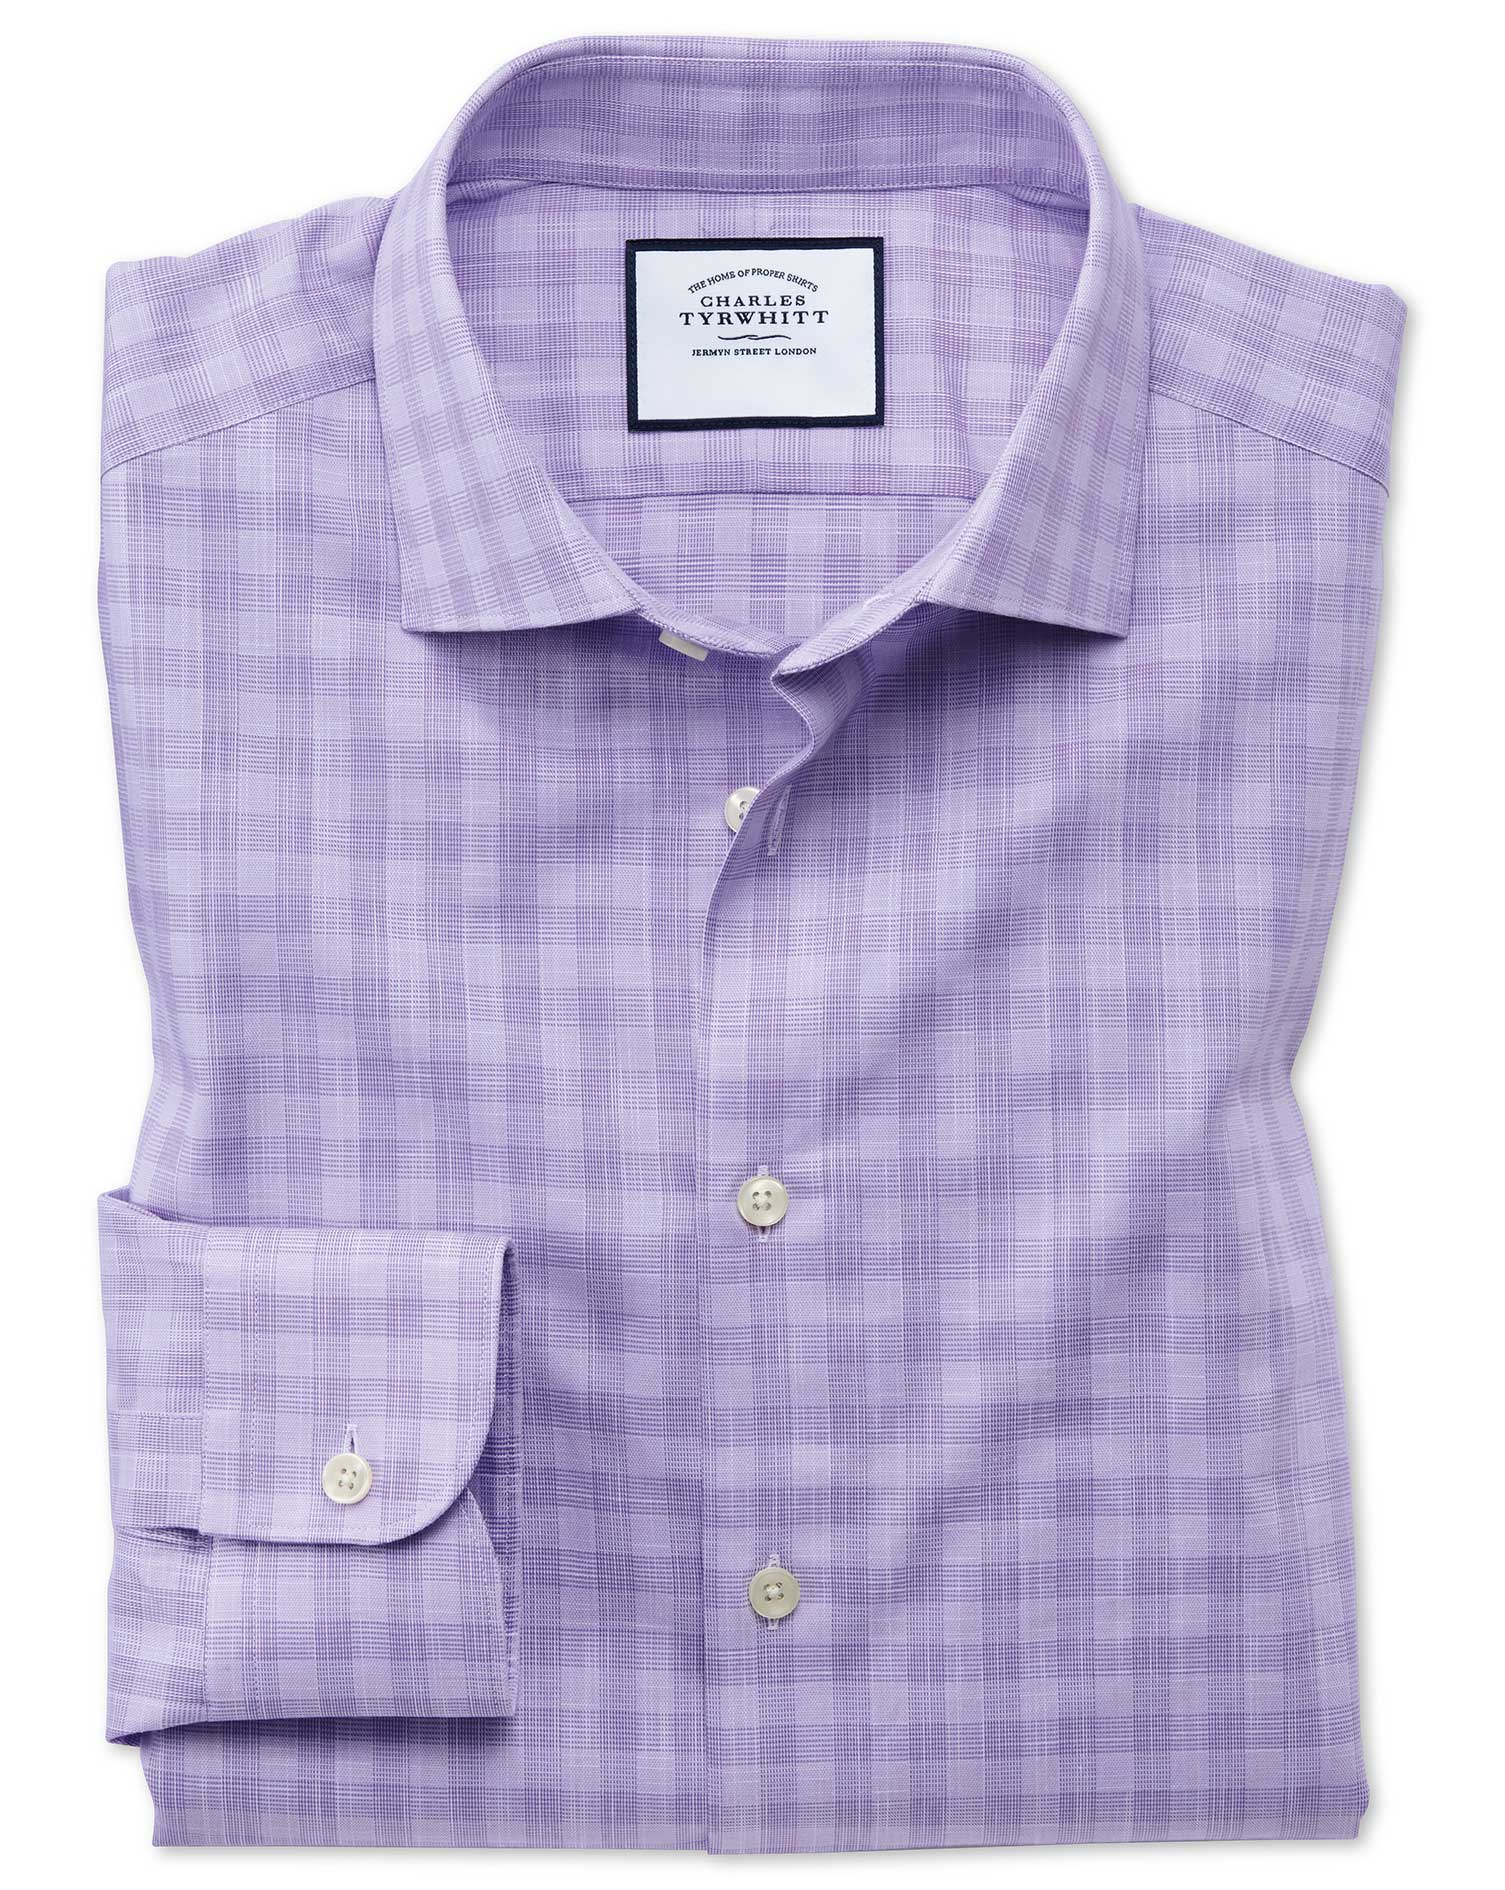 Extra Slim Fit Business Casual Egyptian Cotton Slub Lilac Check Formal Shirt Single Cuff Size 16.5/3